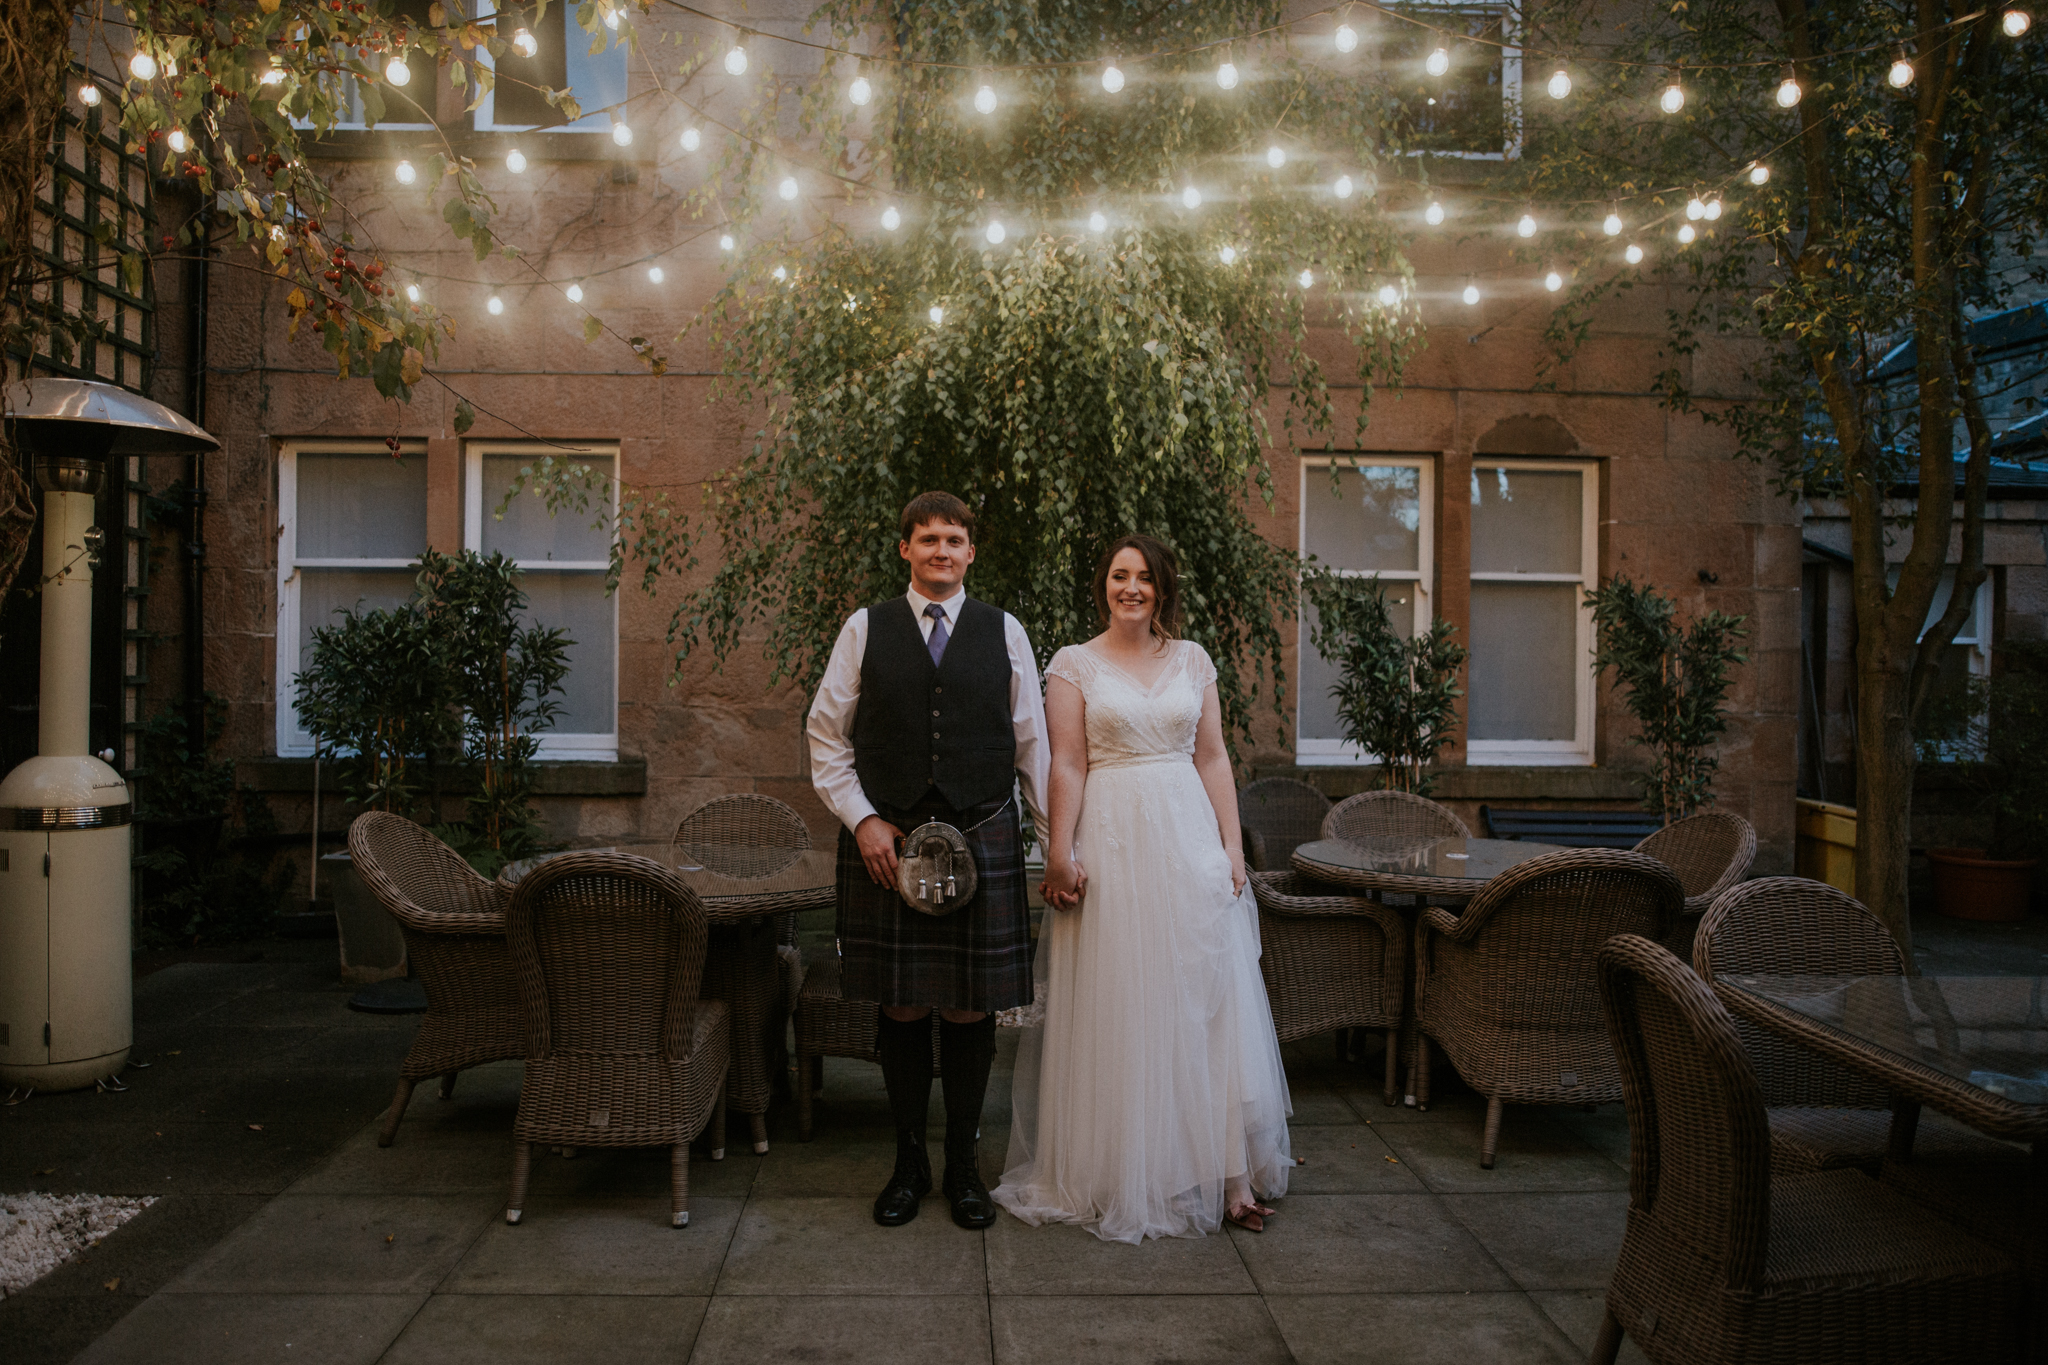 The best wedding photographer in Scotland